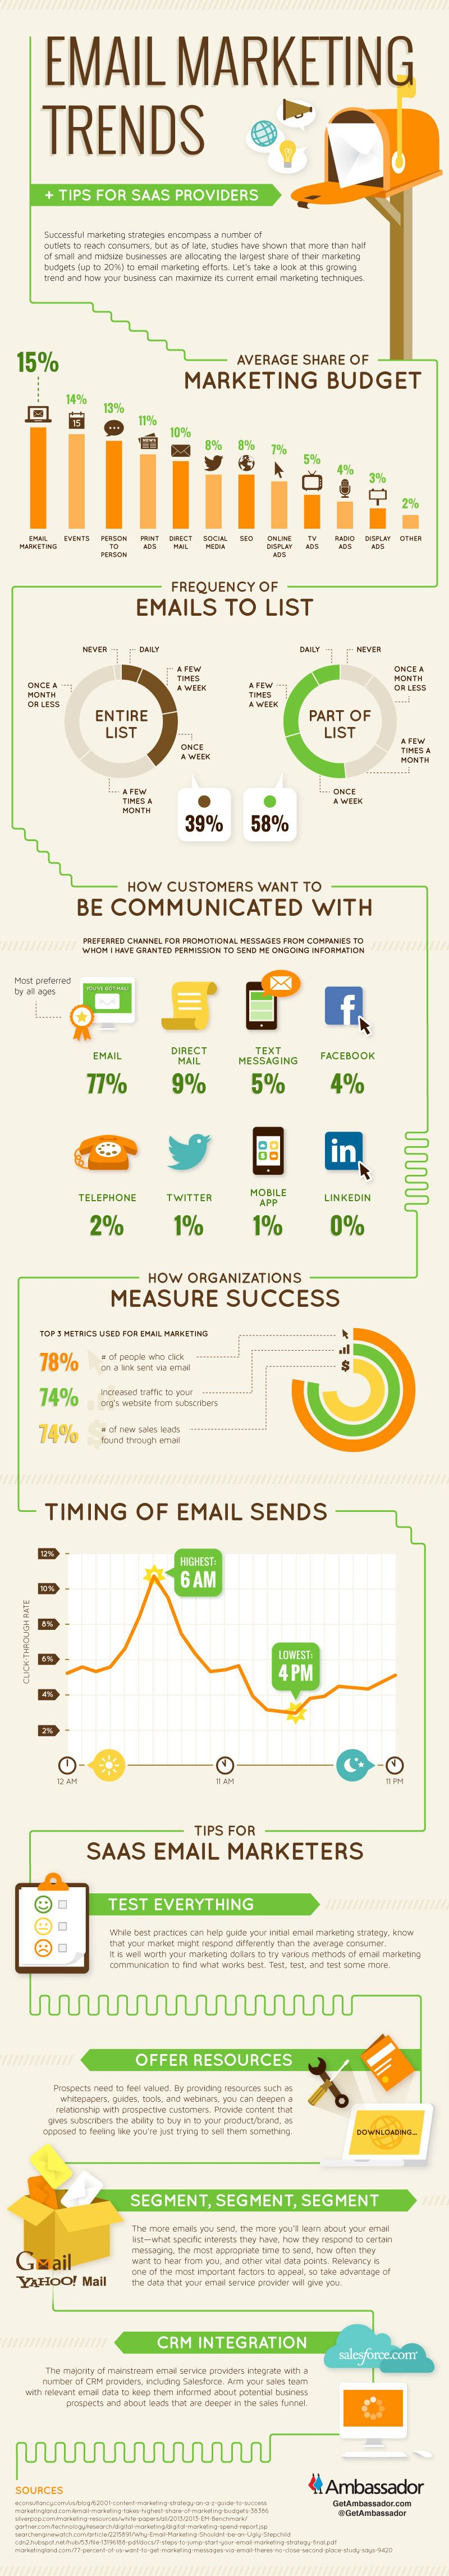 6 Important Email Marketing Trends   Email Marketing ...